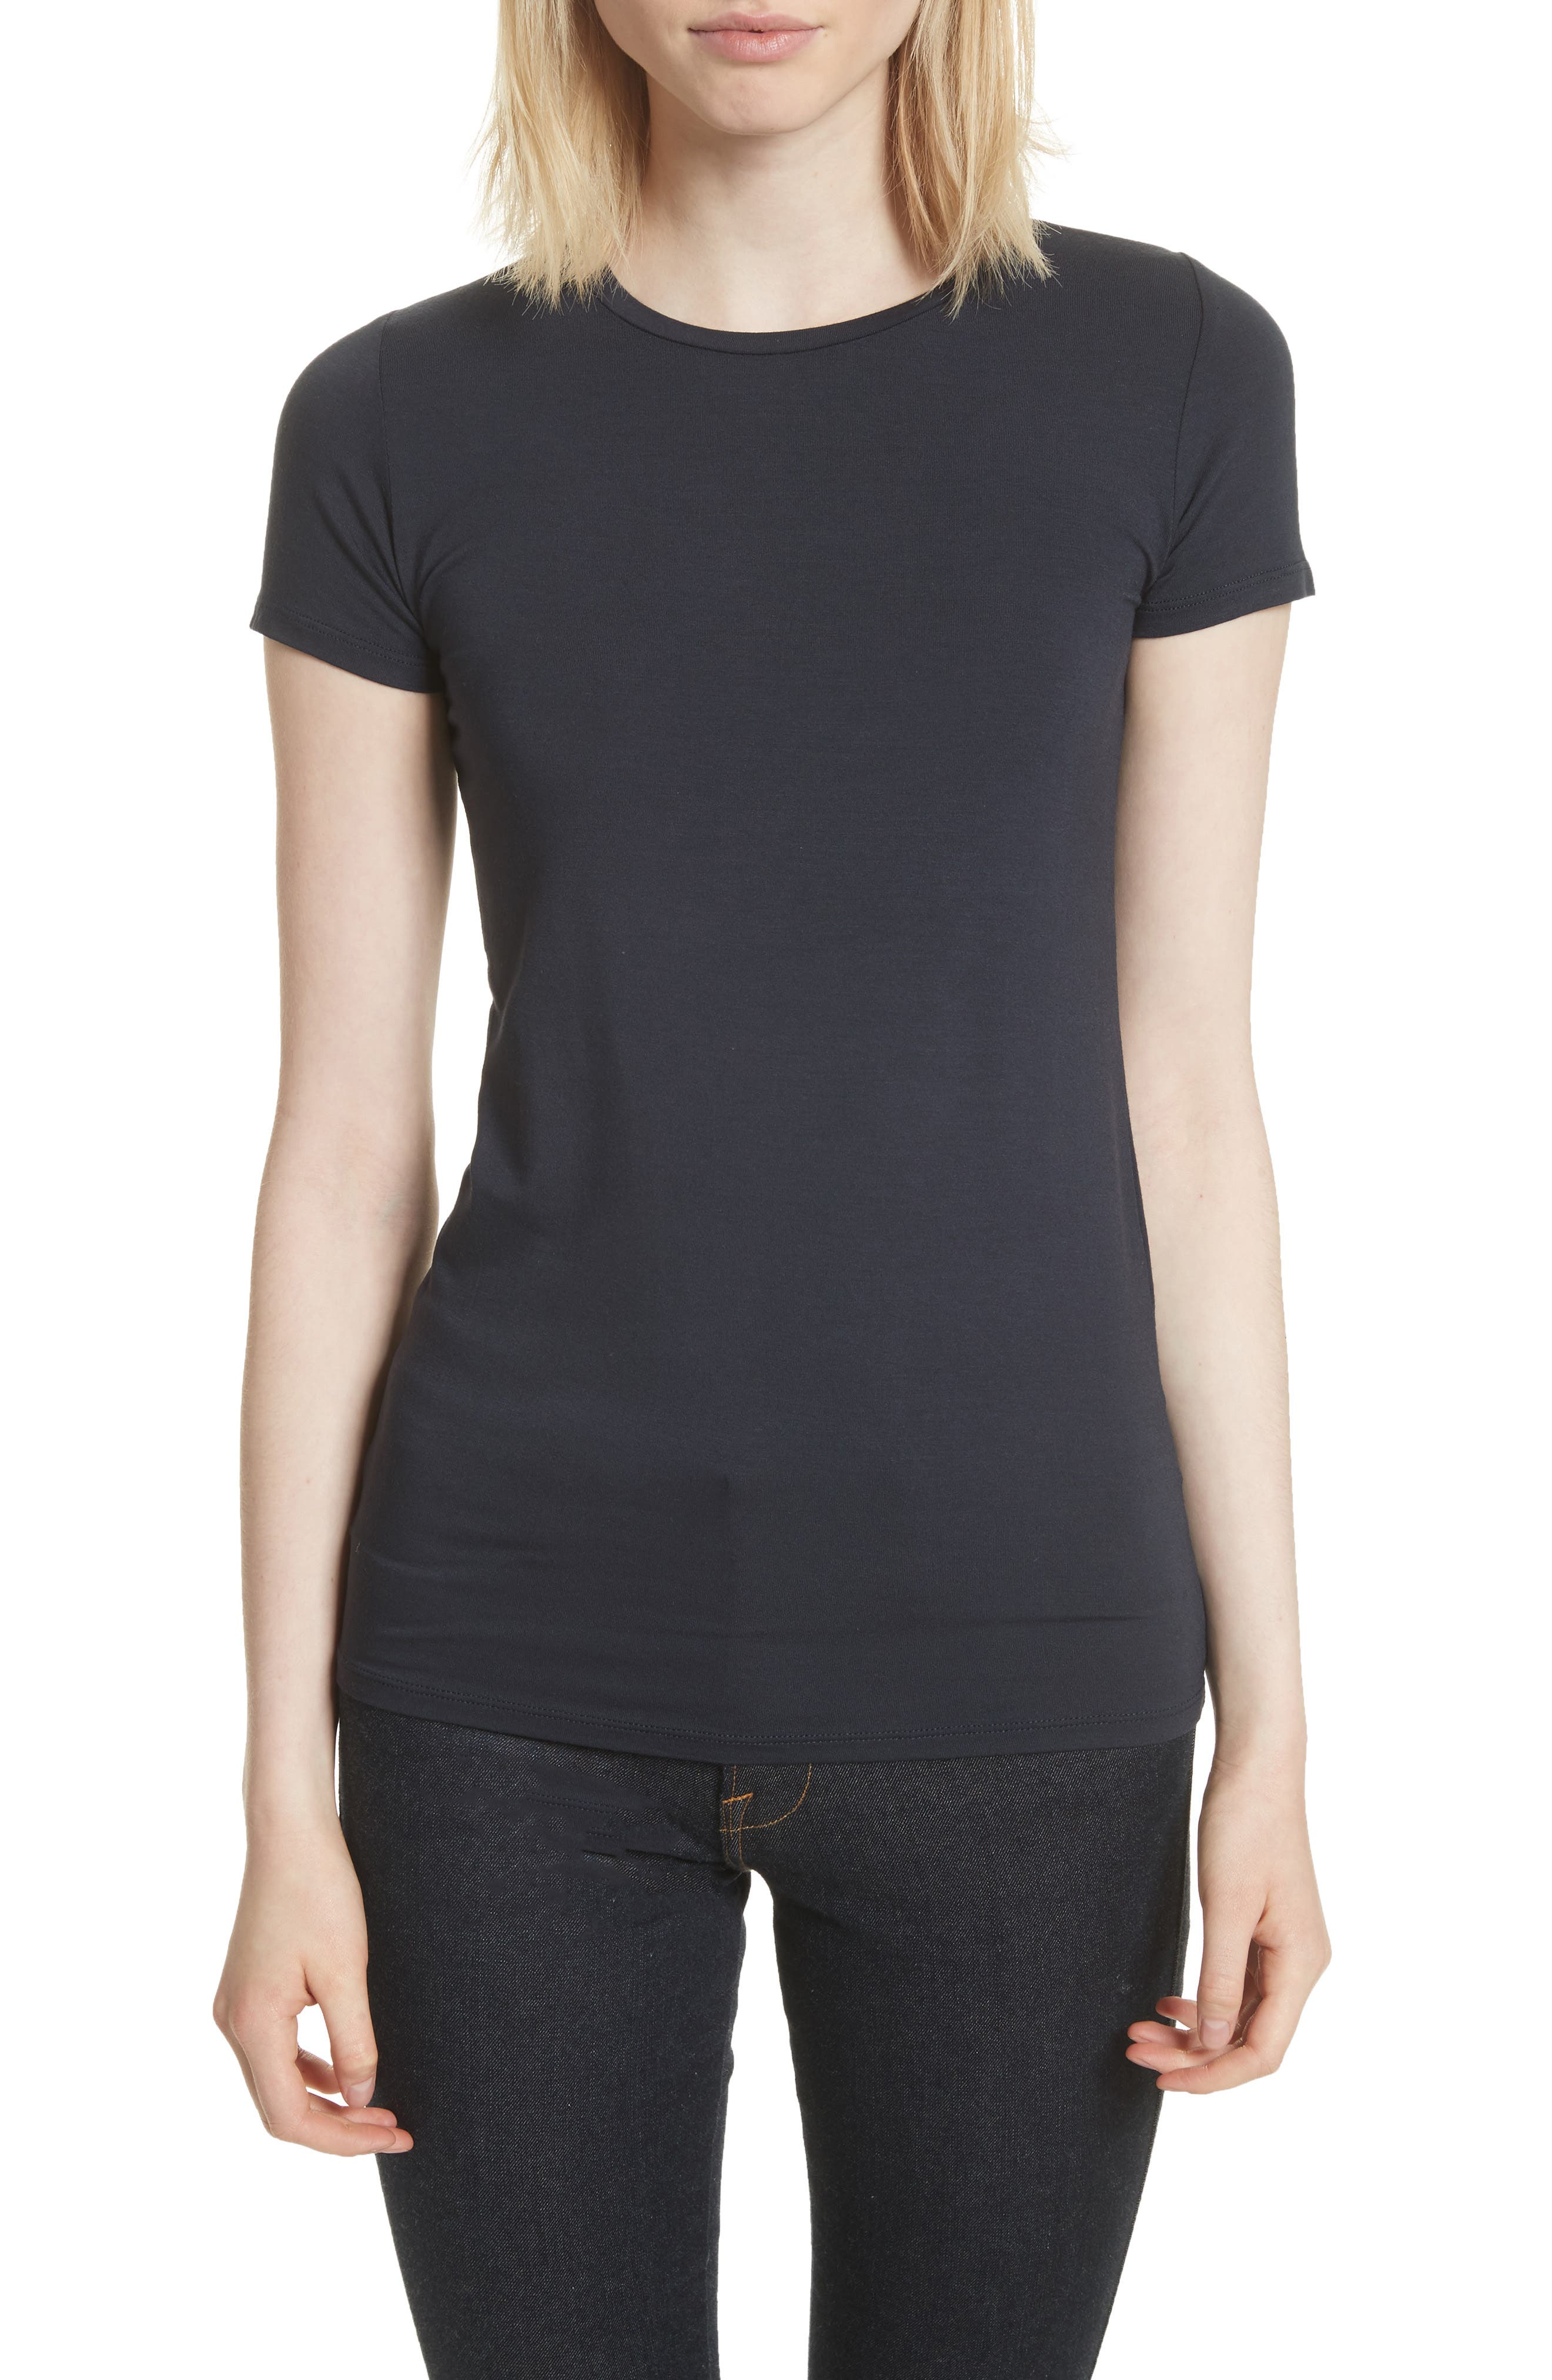 MAJESTIC Soft Touch Short-Sleeve Crewneck T-Shirt in Marine